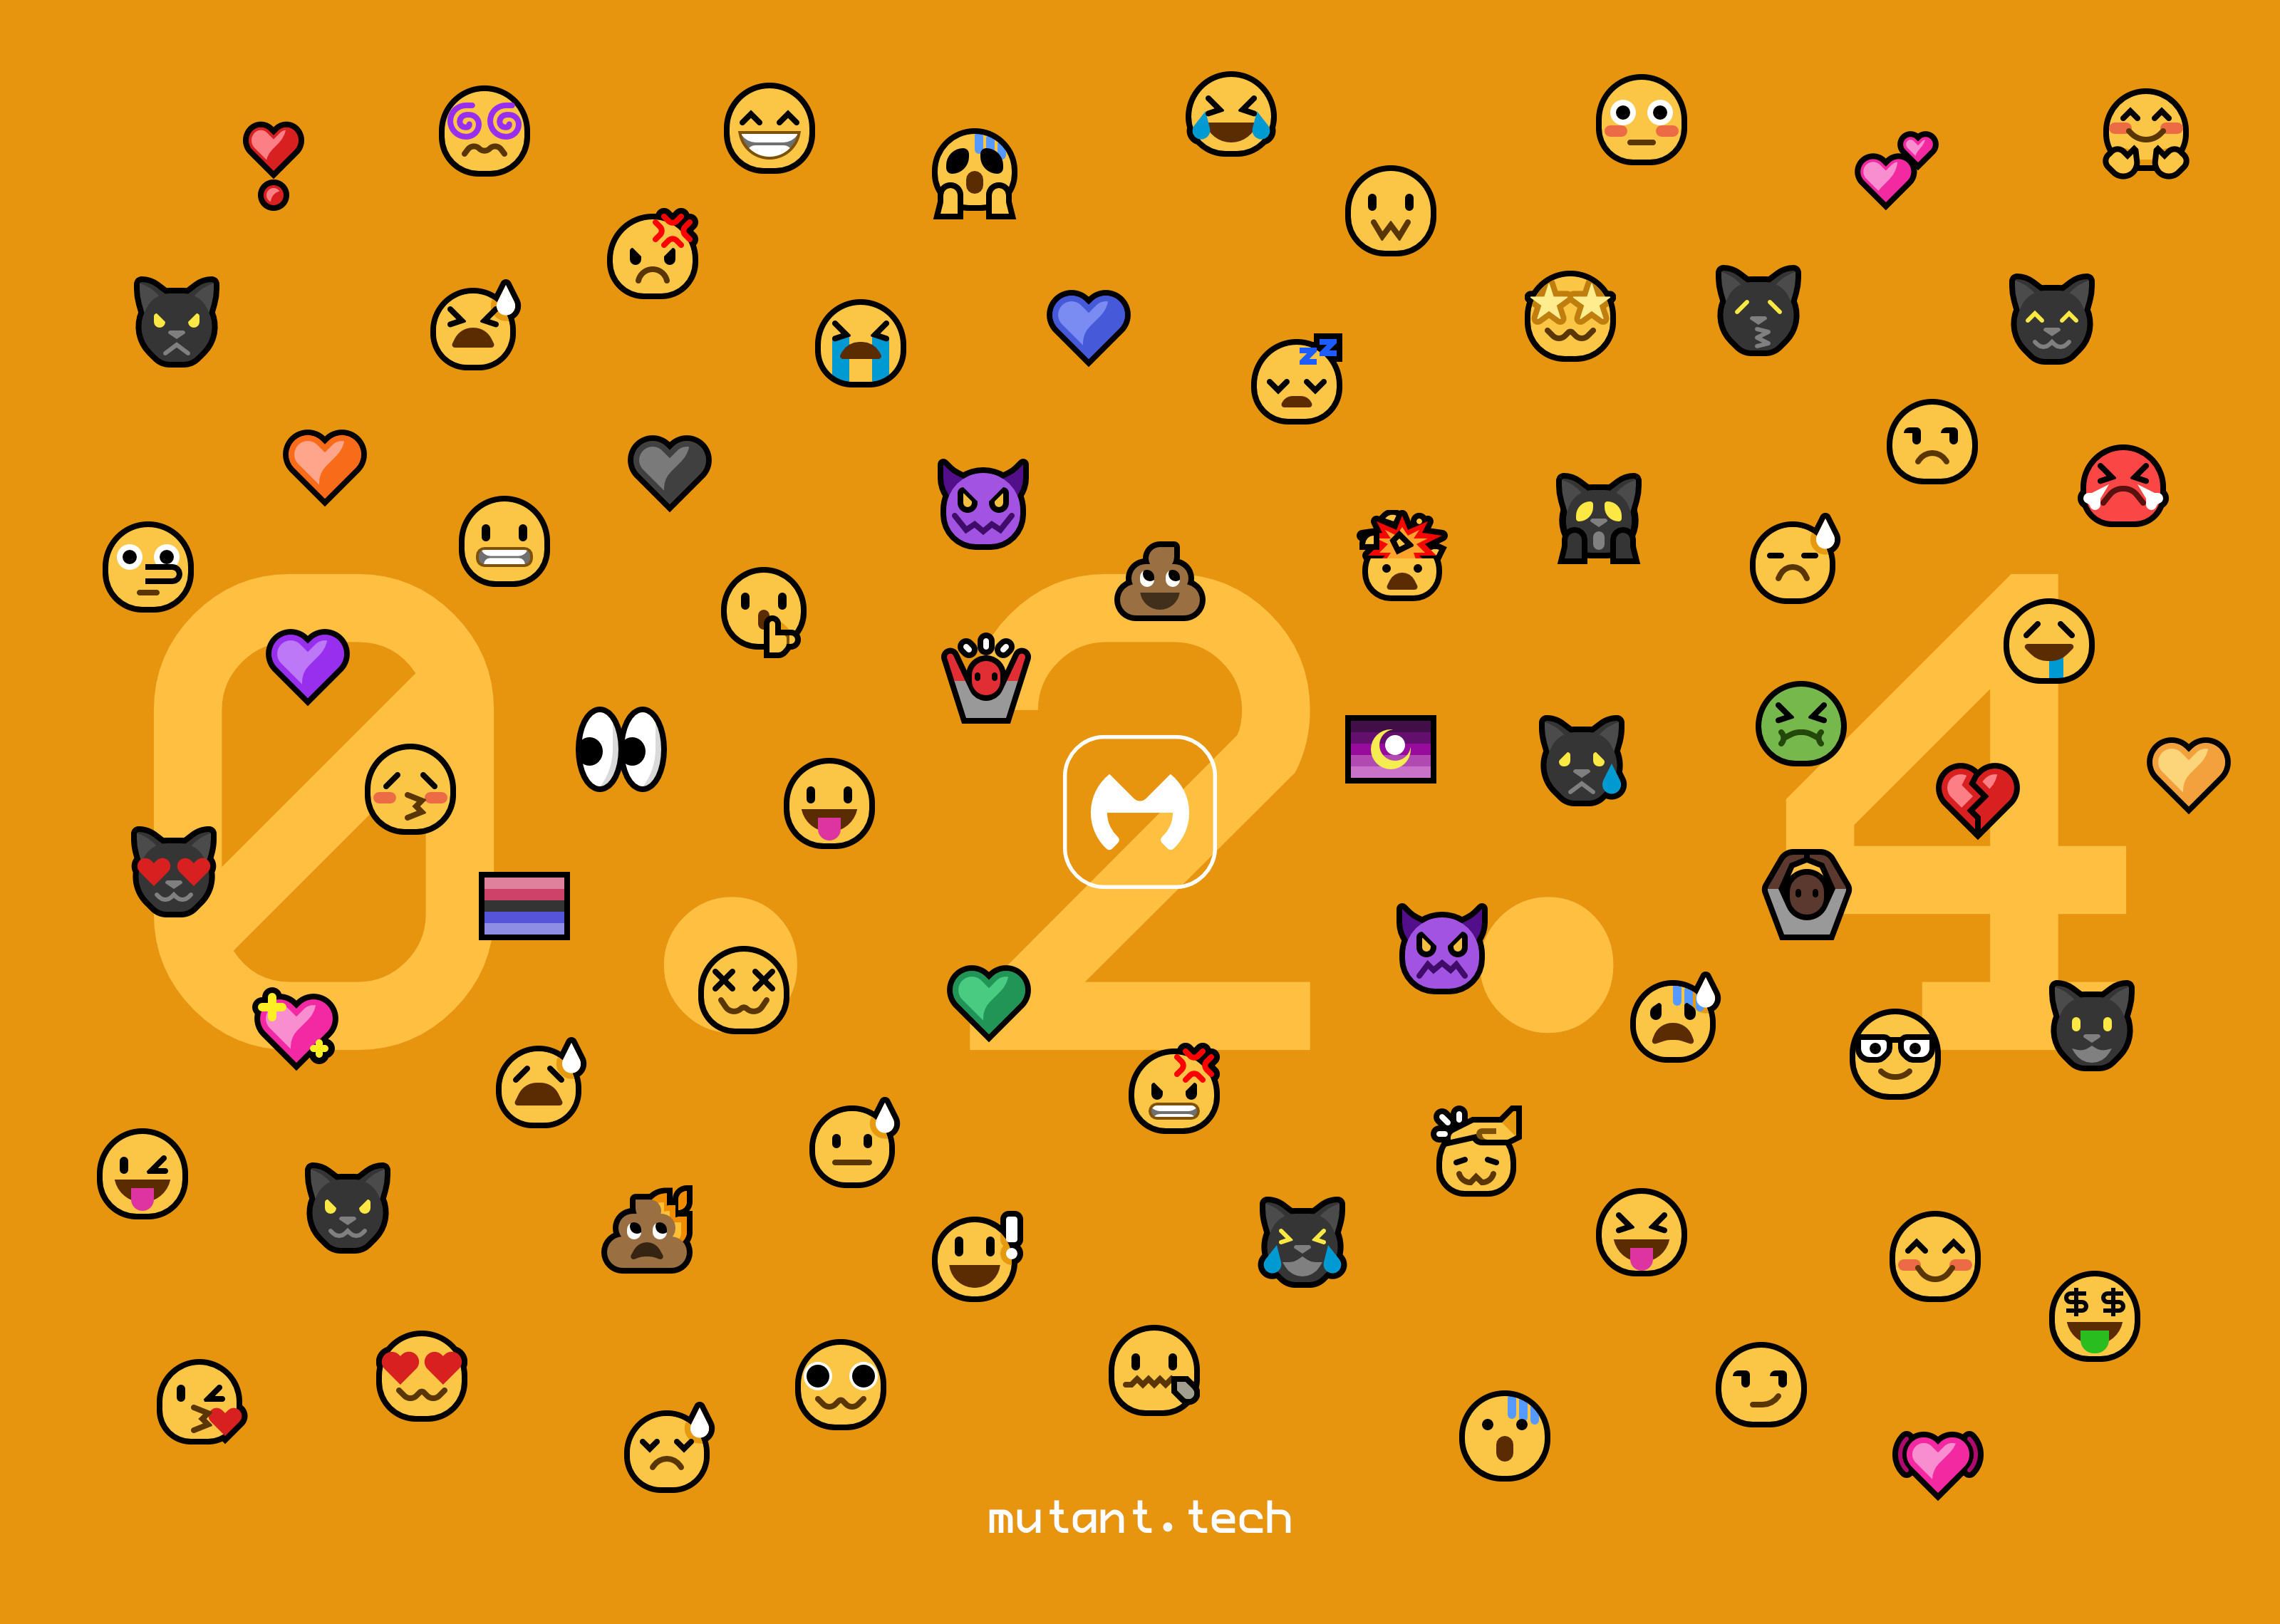 Promo image for Mutant Standard 0.2.4. Many of the redesigned and new emoji in 0.2.4 are scattered around the Mutant Standard logo in front of a bright orange background. Behind them is '0.2.3' in large light orange letters. The URL mutant.tech is on the center bottom in small white text.